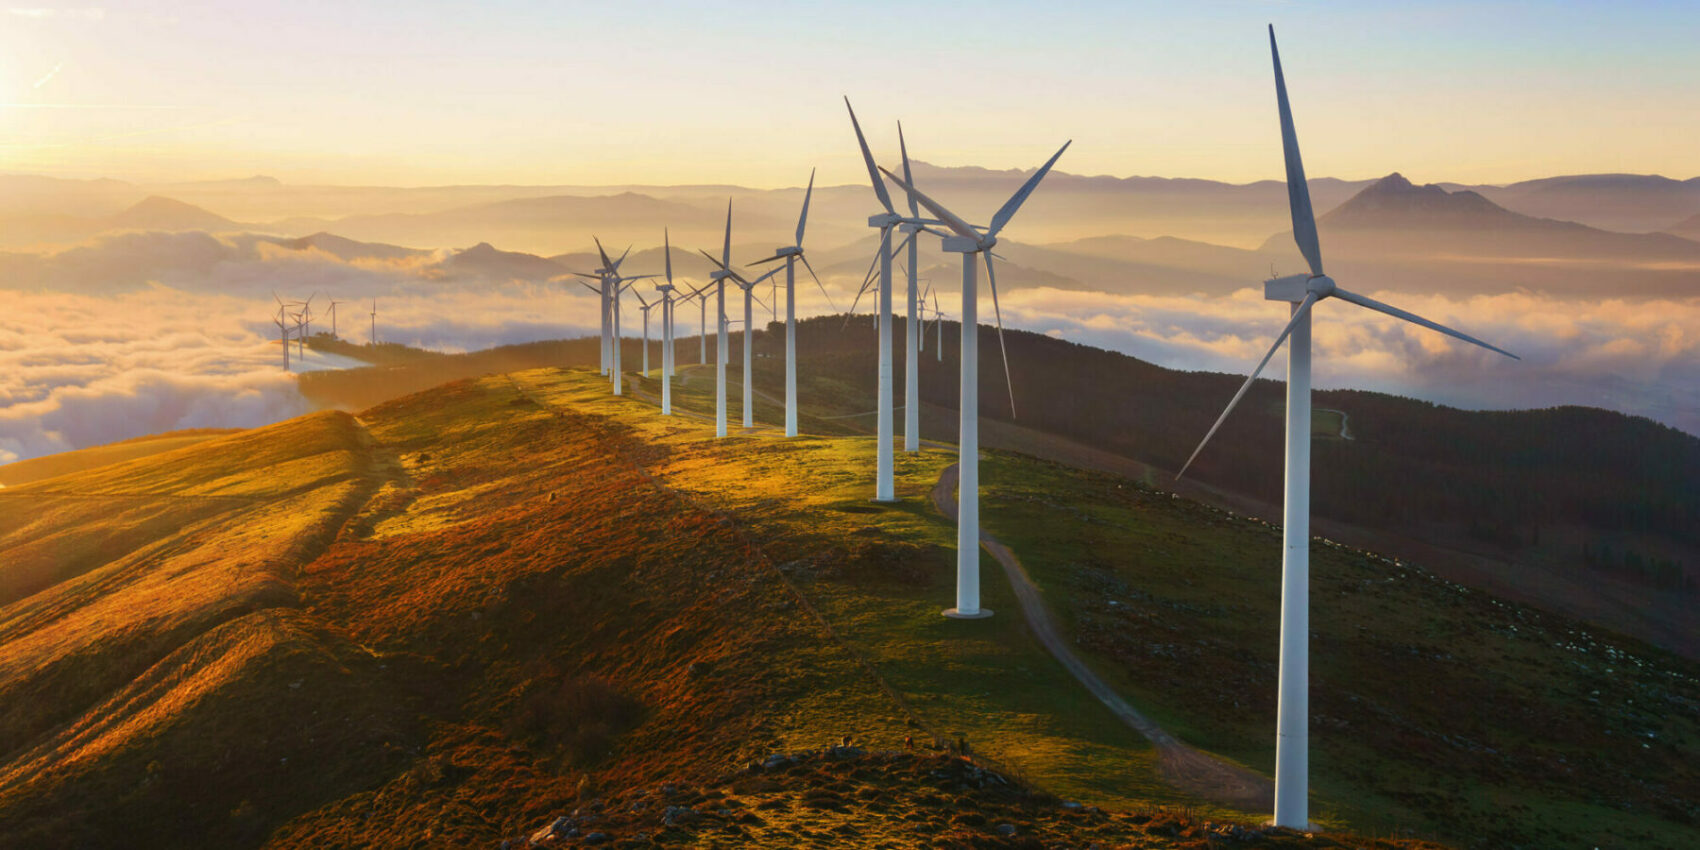 GB becomes Europe's second highest producer of wind generation